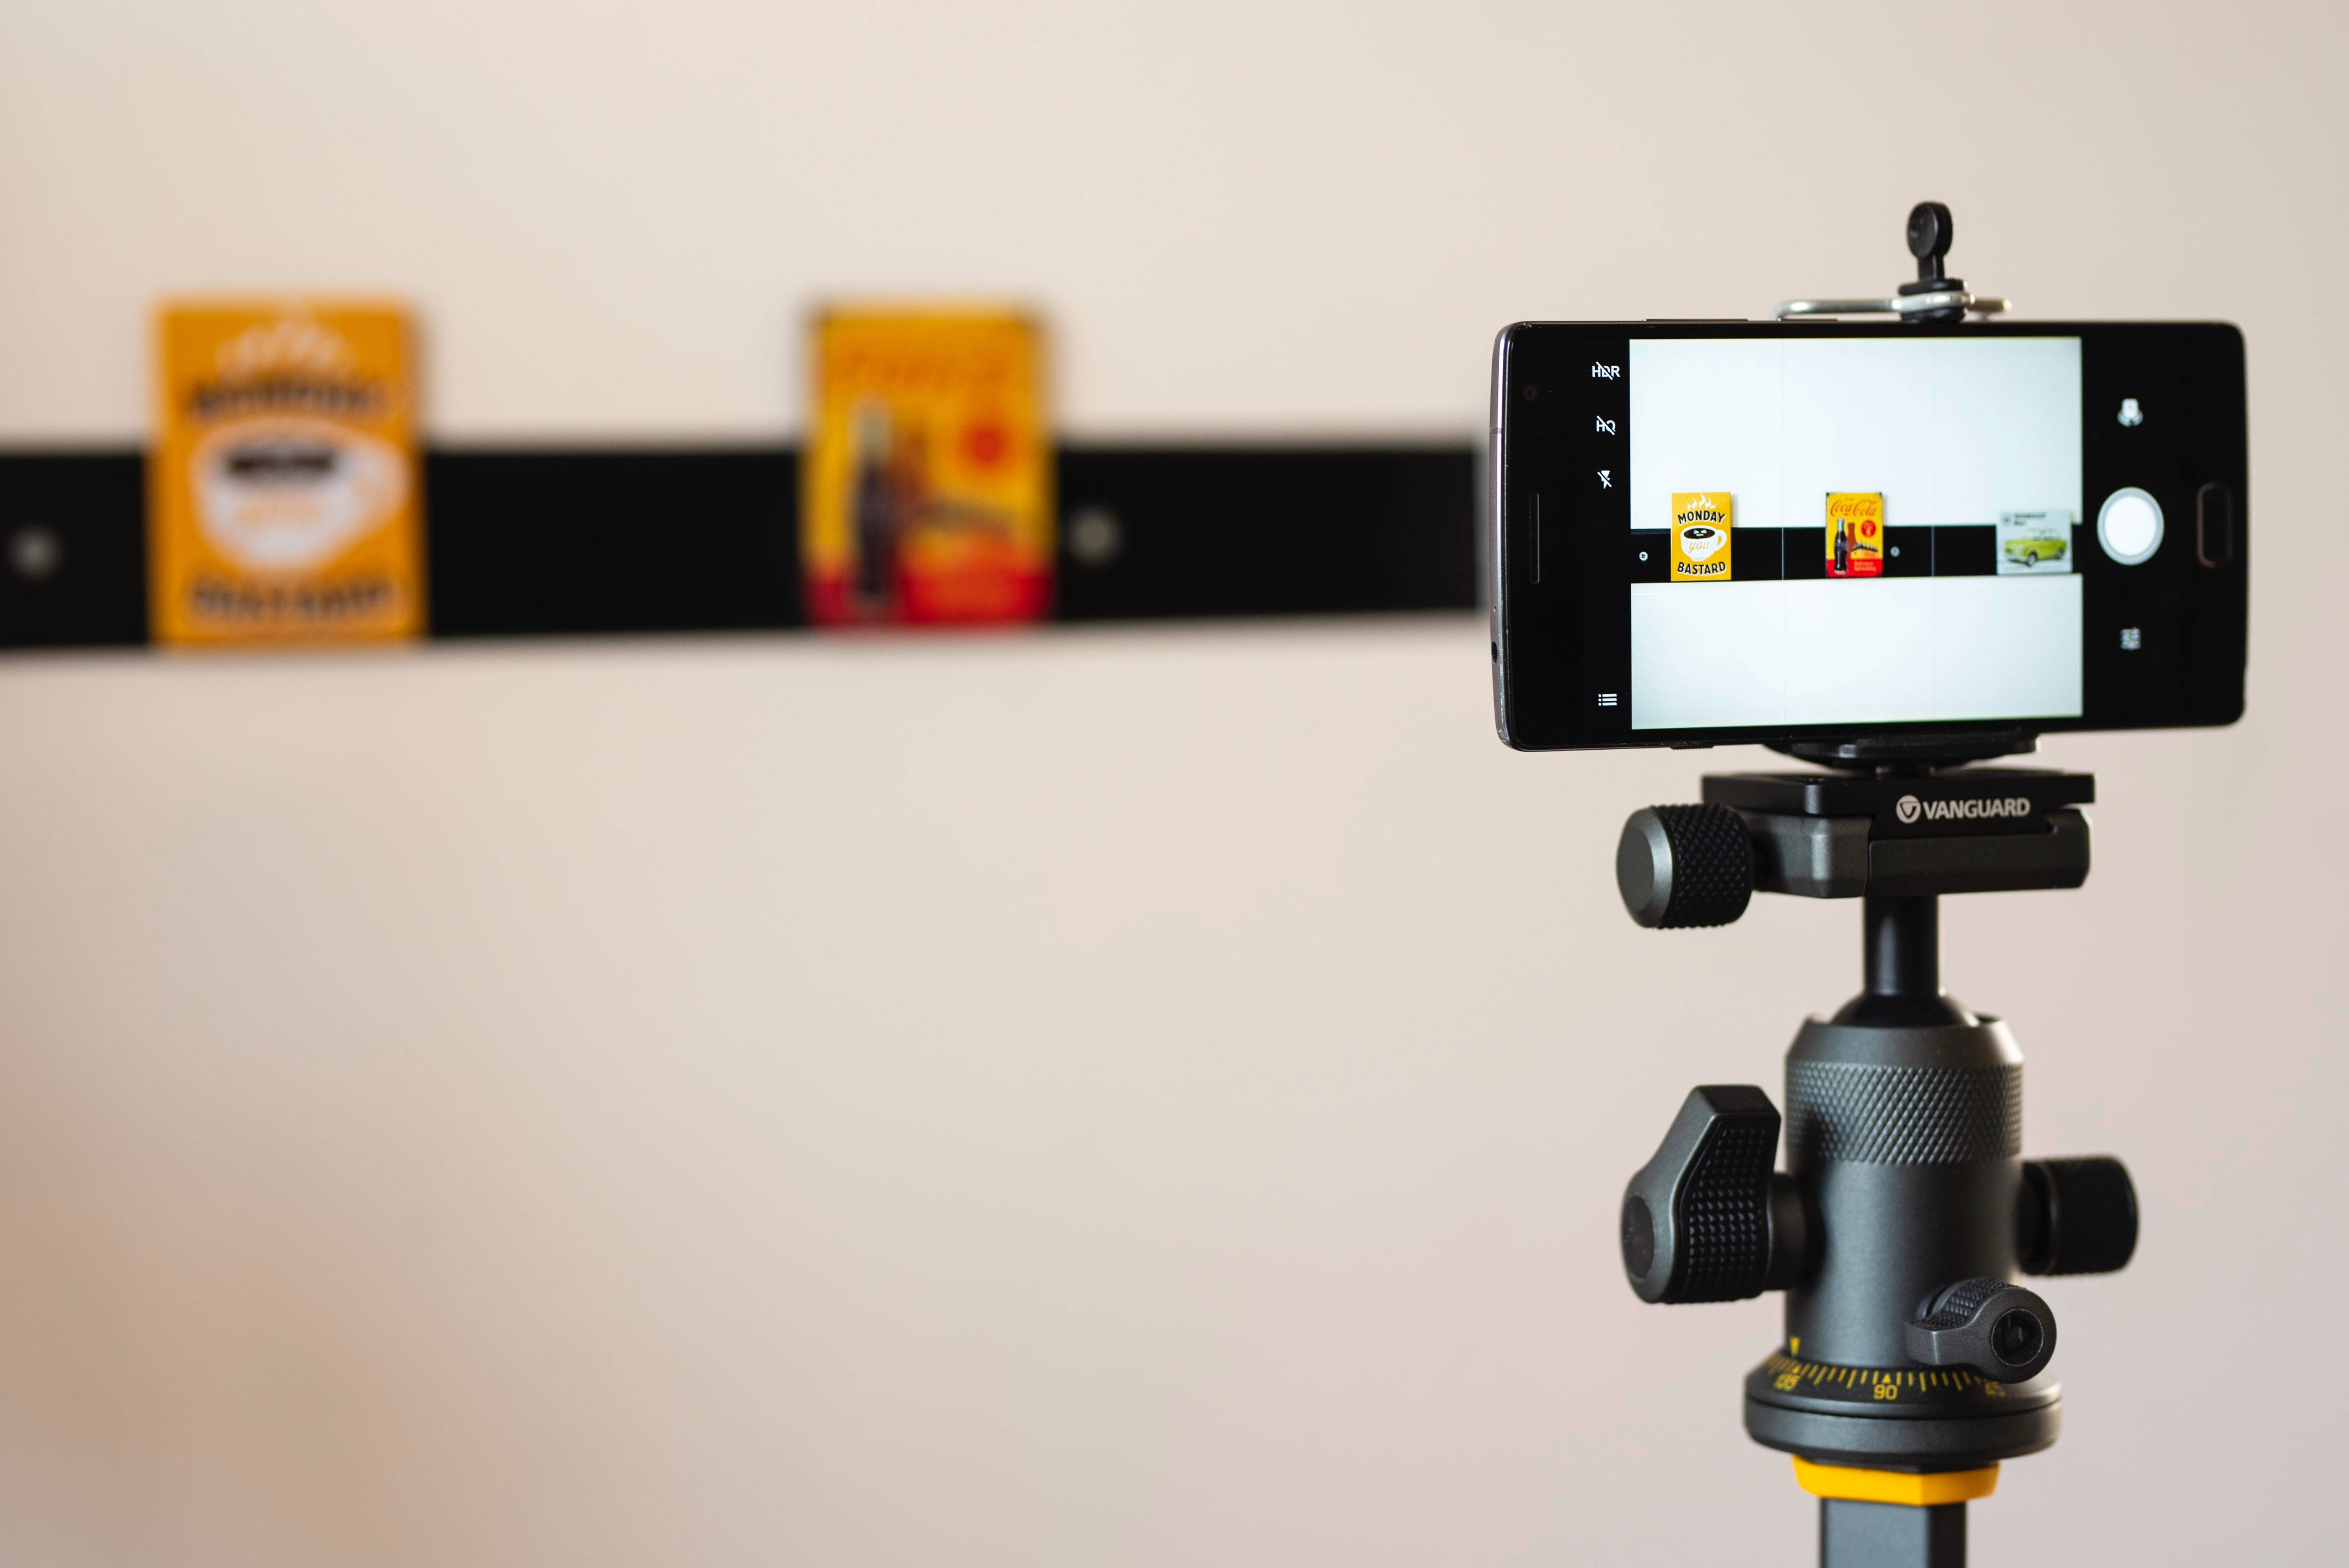 Facebook Live Best Practices - An image of a camera phone on a tripod